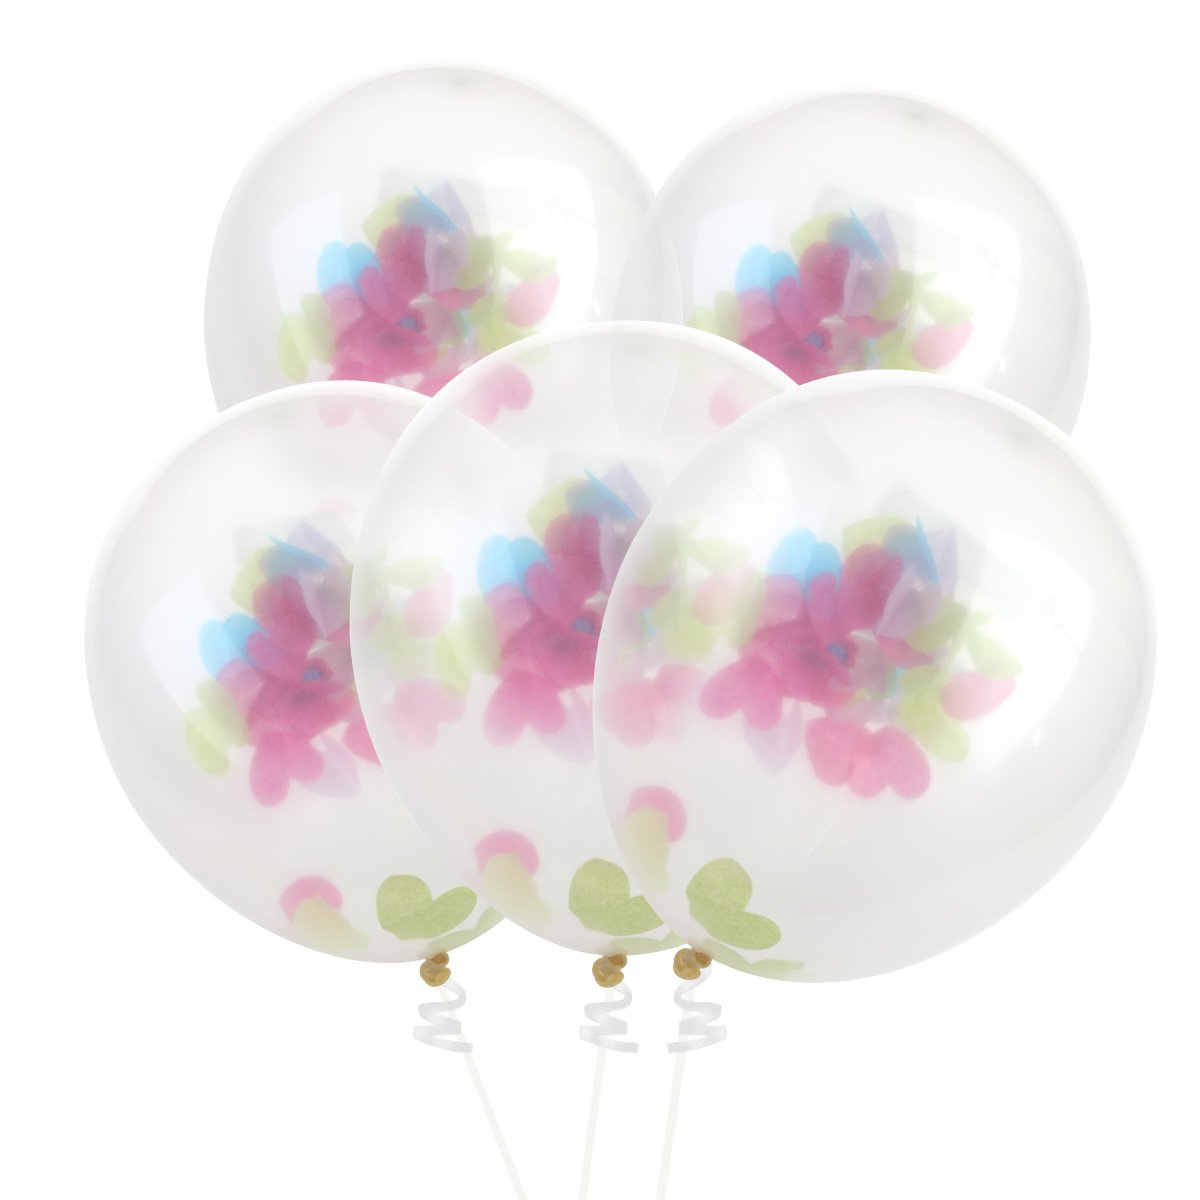 NUOLUX Confetti Balloons Transparent Balloons with Colorful Love Confettis 5pcs